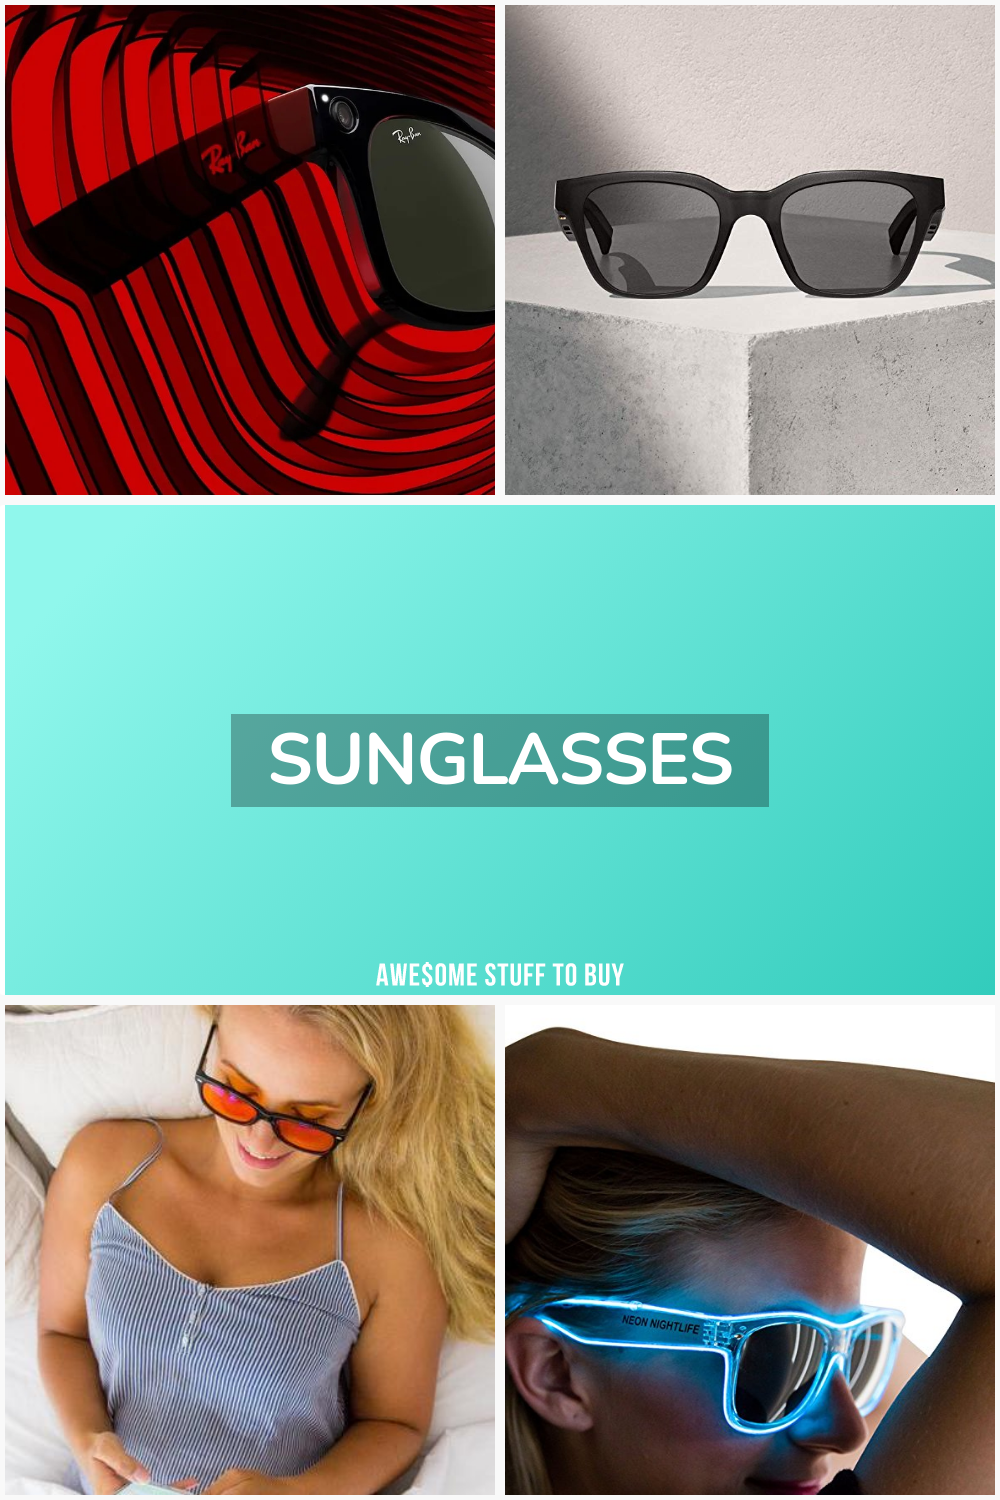 Sunglasses // Awesome Stuff to Buy